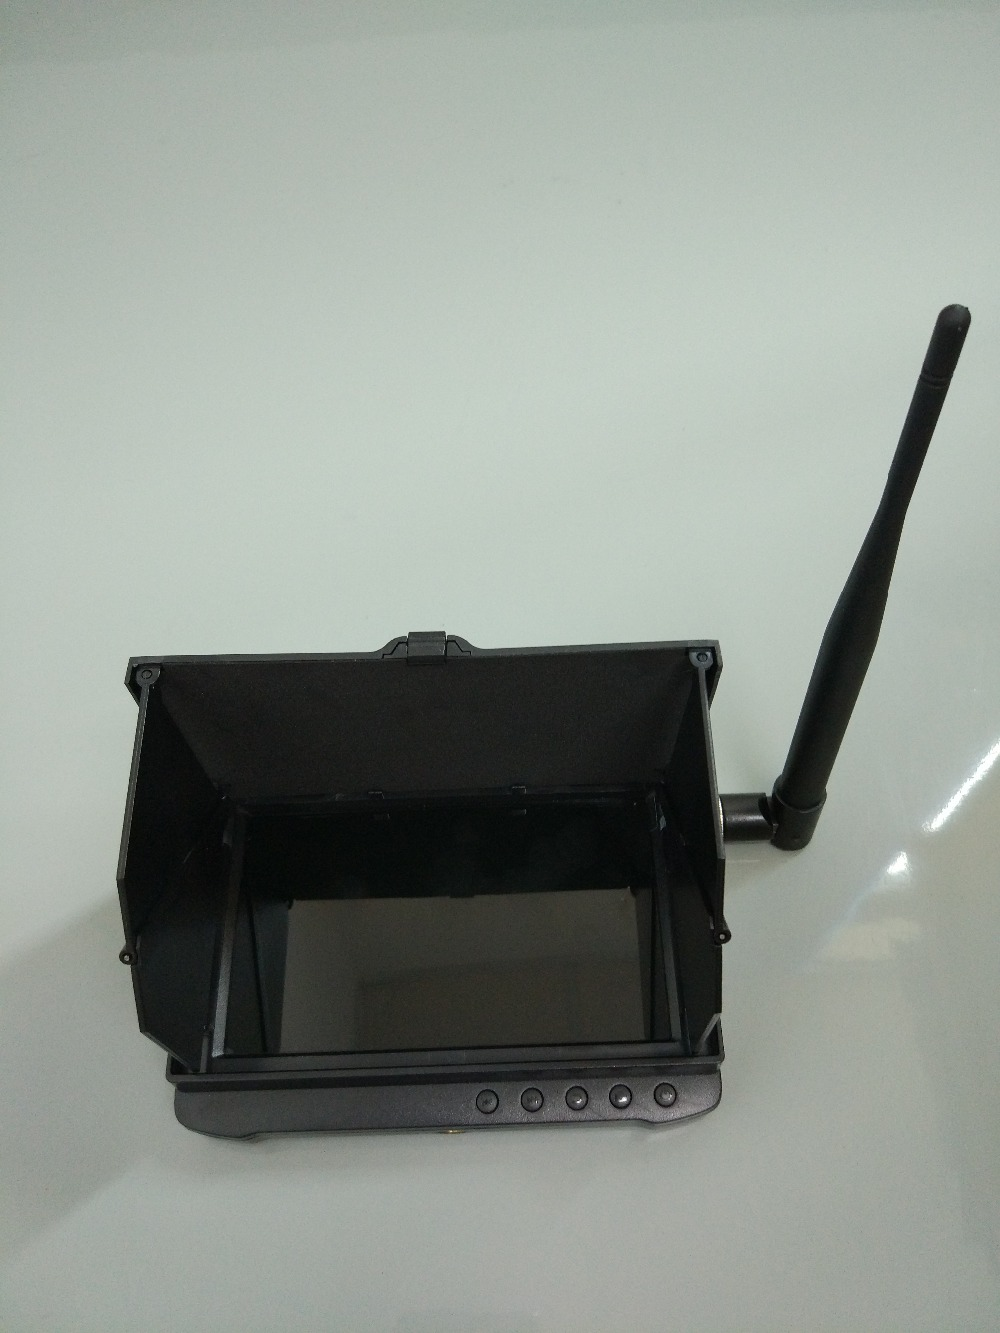 5 Inch Baby Monitor Receiver 1.2Ghz/ 2.4Ghz /5.8Ghz Wireless Camera Receiver Take Photo and Video